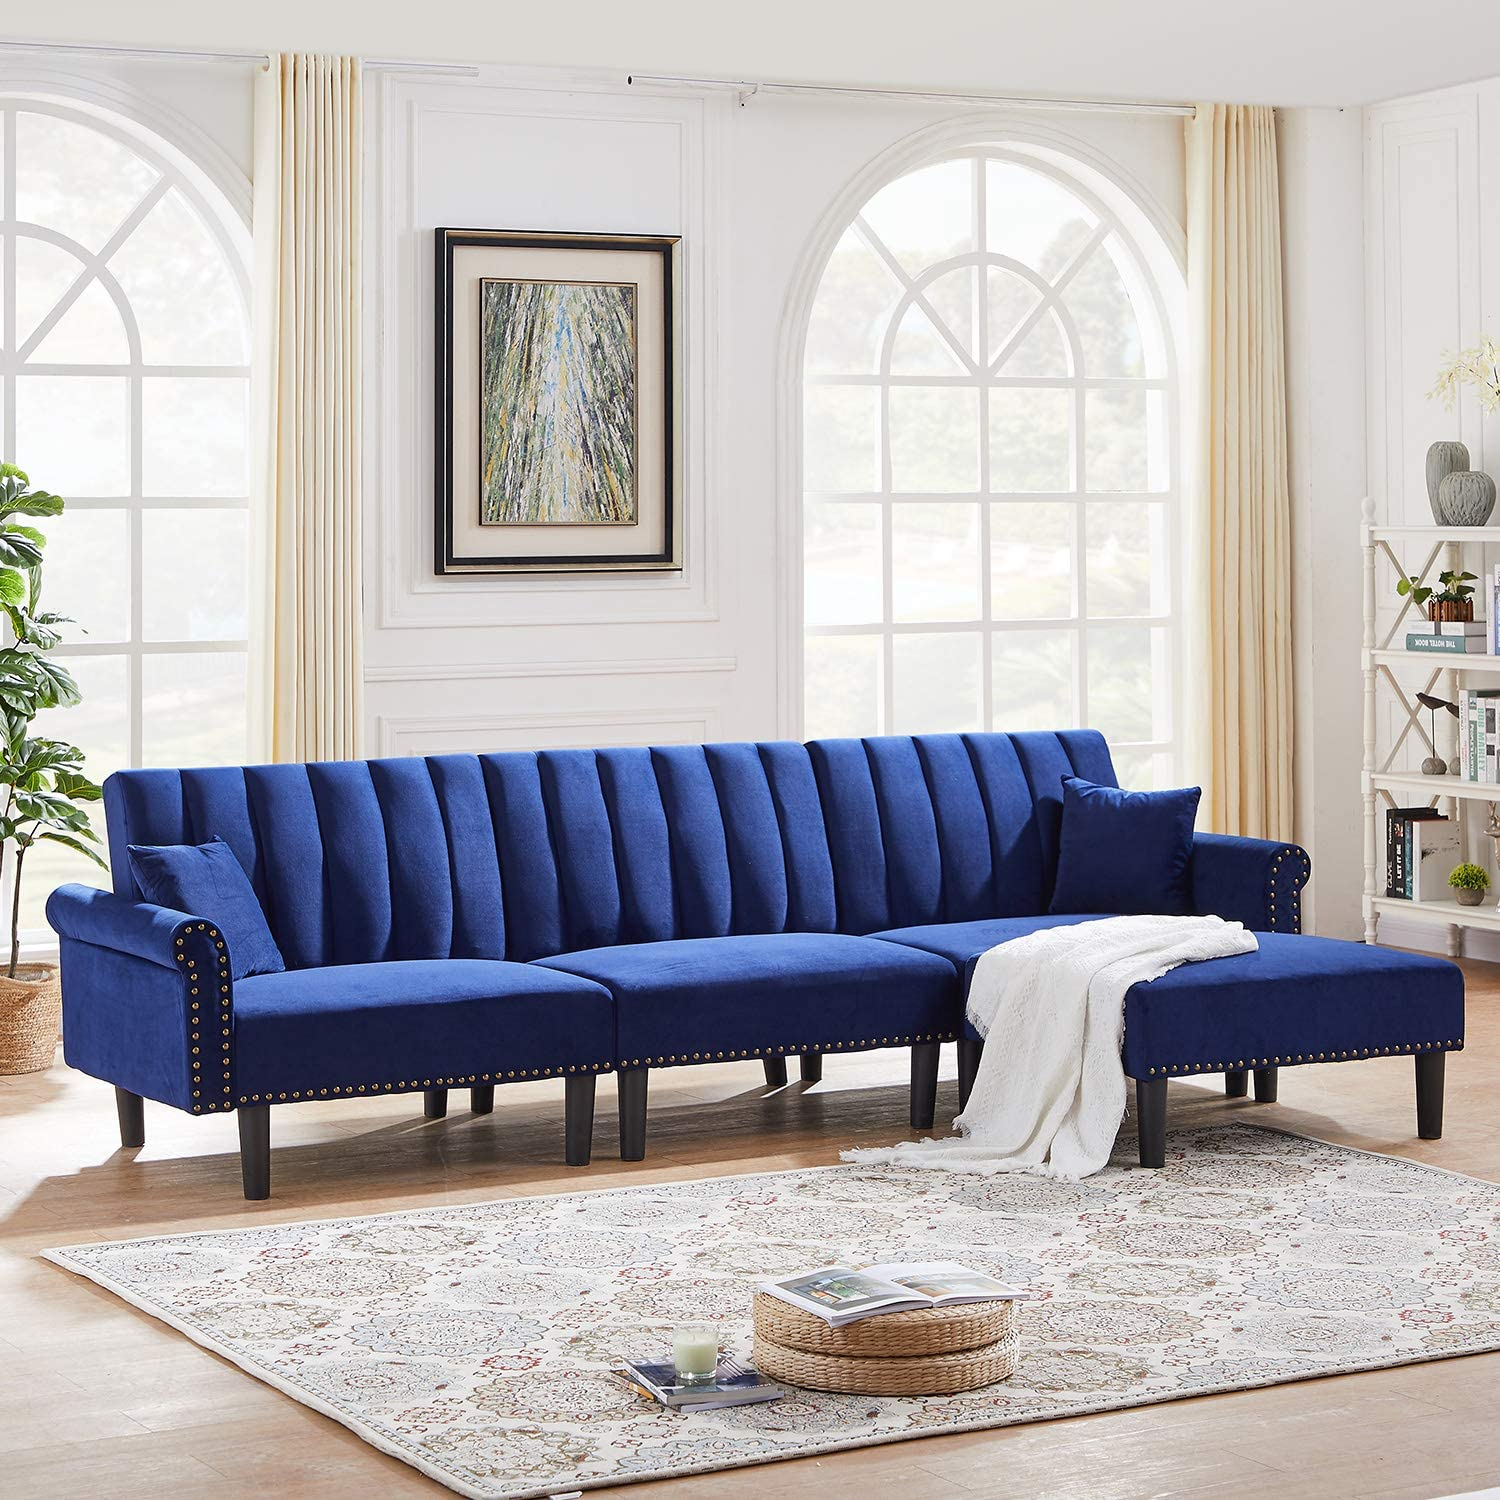 Dklgg Futon Sofa Bed Sectional Couch 4 Seater Modern Velvet Fabric Classic Upholstered Couches With Super Soft Cushion For Living Room Navy Blue Furniture Decor